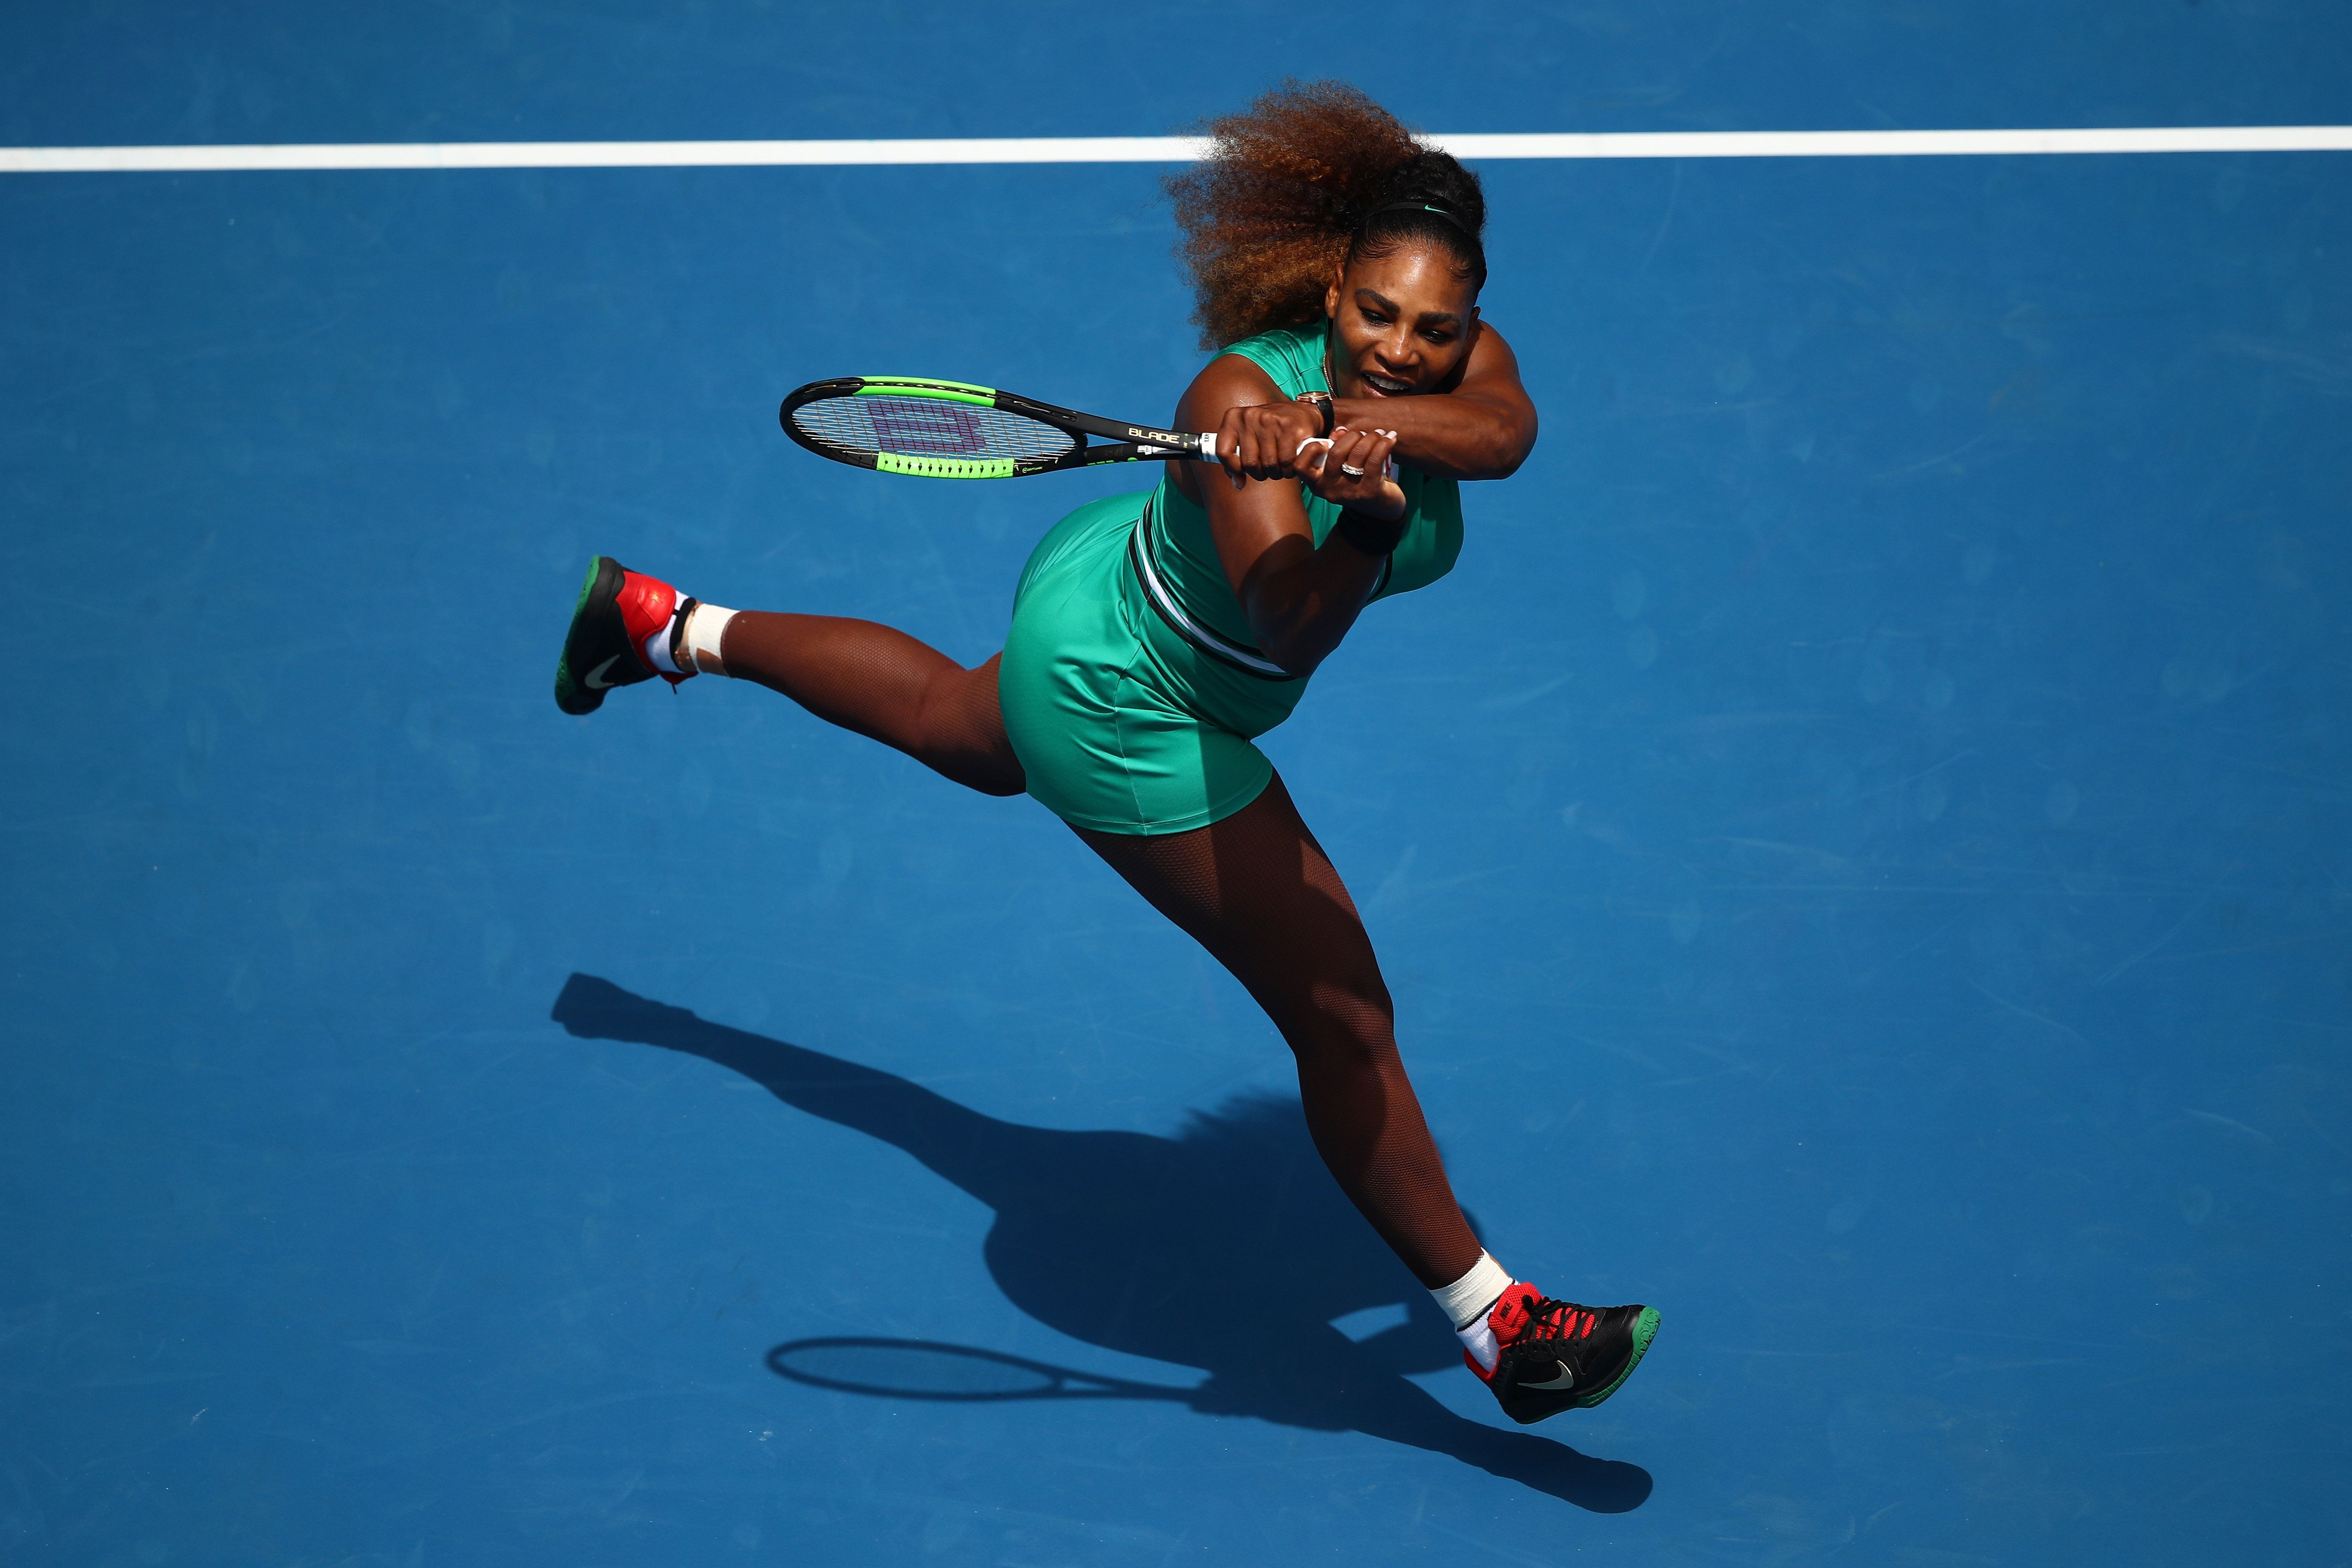 MELBOURNE, AUSTRALIA - JANUARY 15:  Serena Williams of the United States plays a backhand in her first round match against Tatjana Maria of Germany during day two of the 2019 Australian Open at Melbourne Park on January 15, 2019 in Melbourne, Australia.  (Photo by Julian Finney/Getty Images)